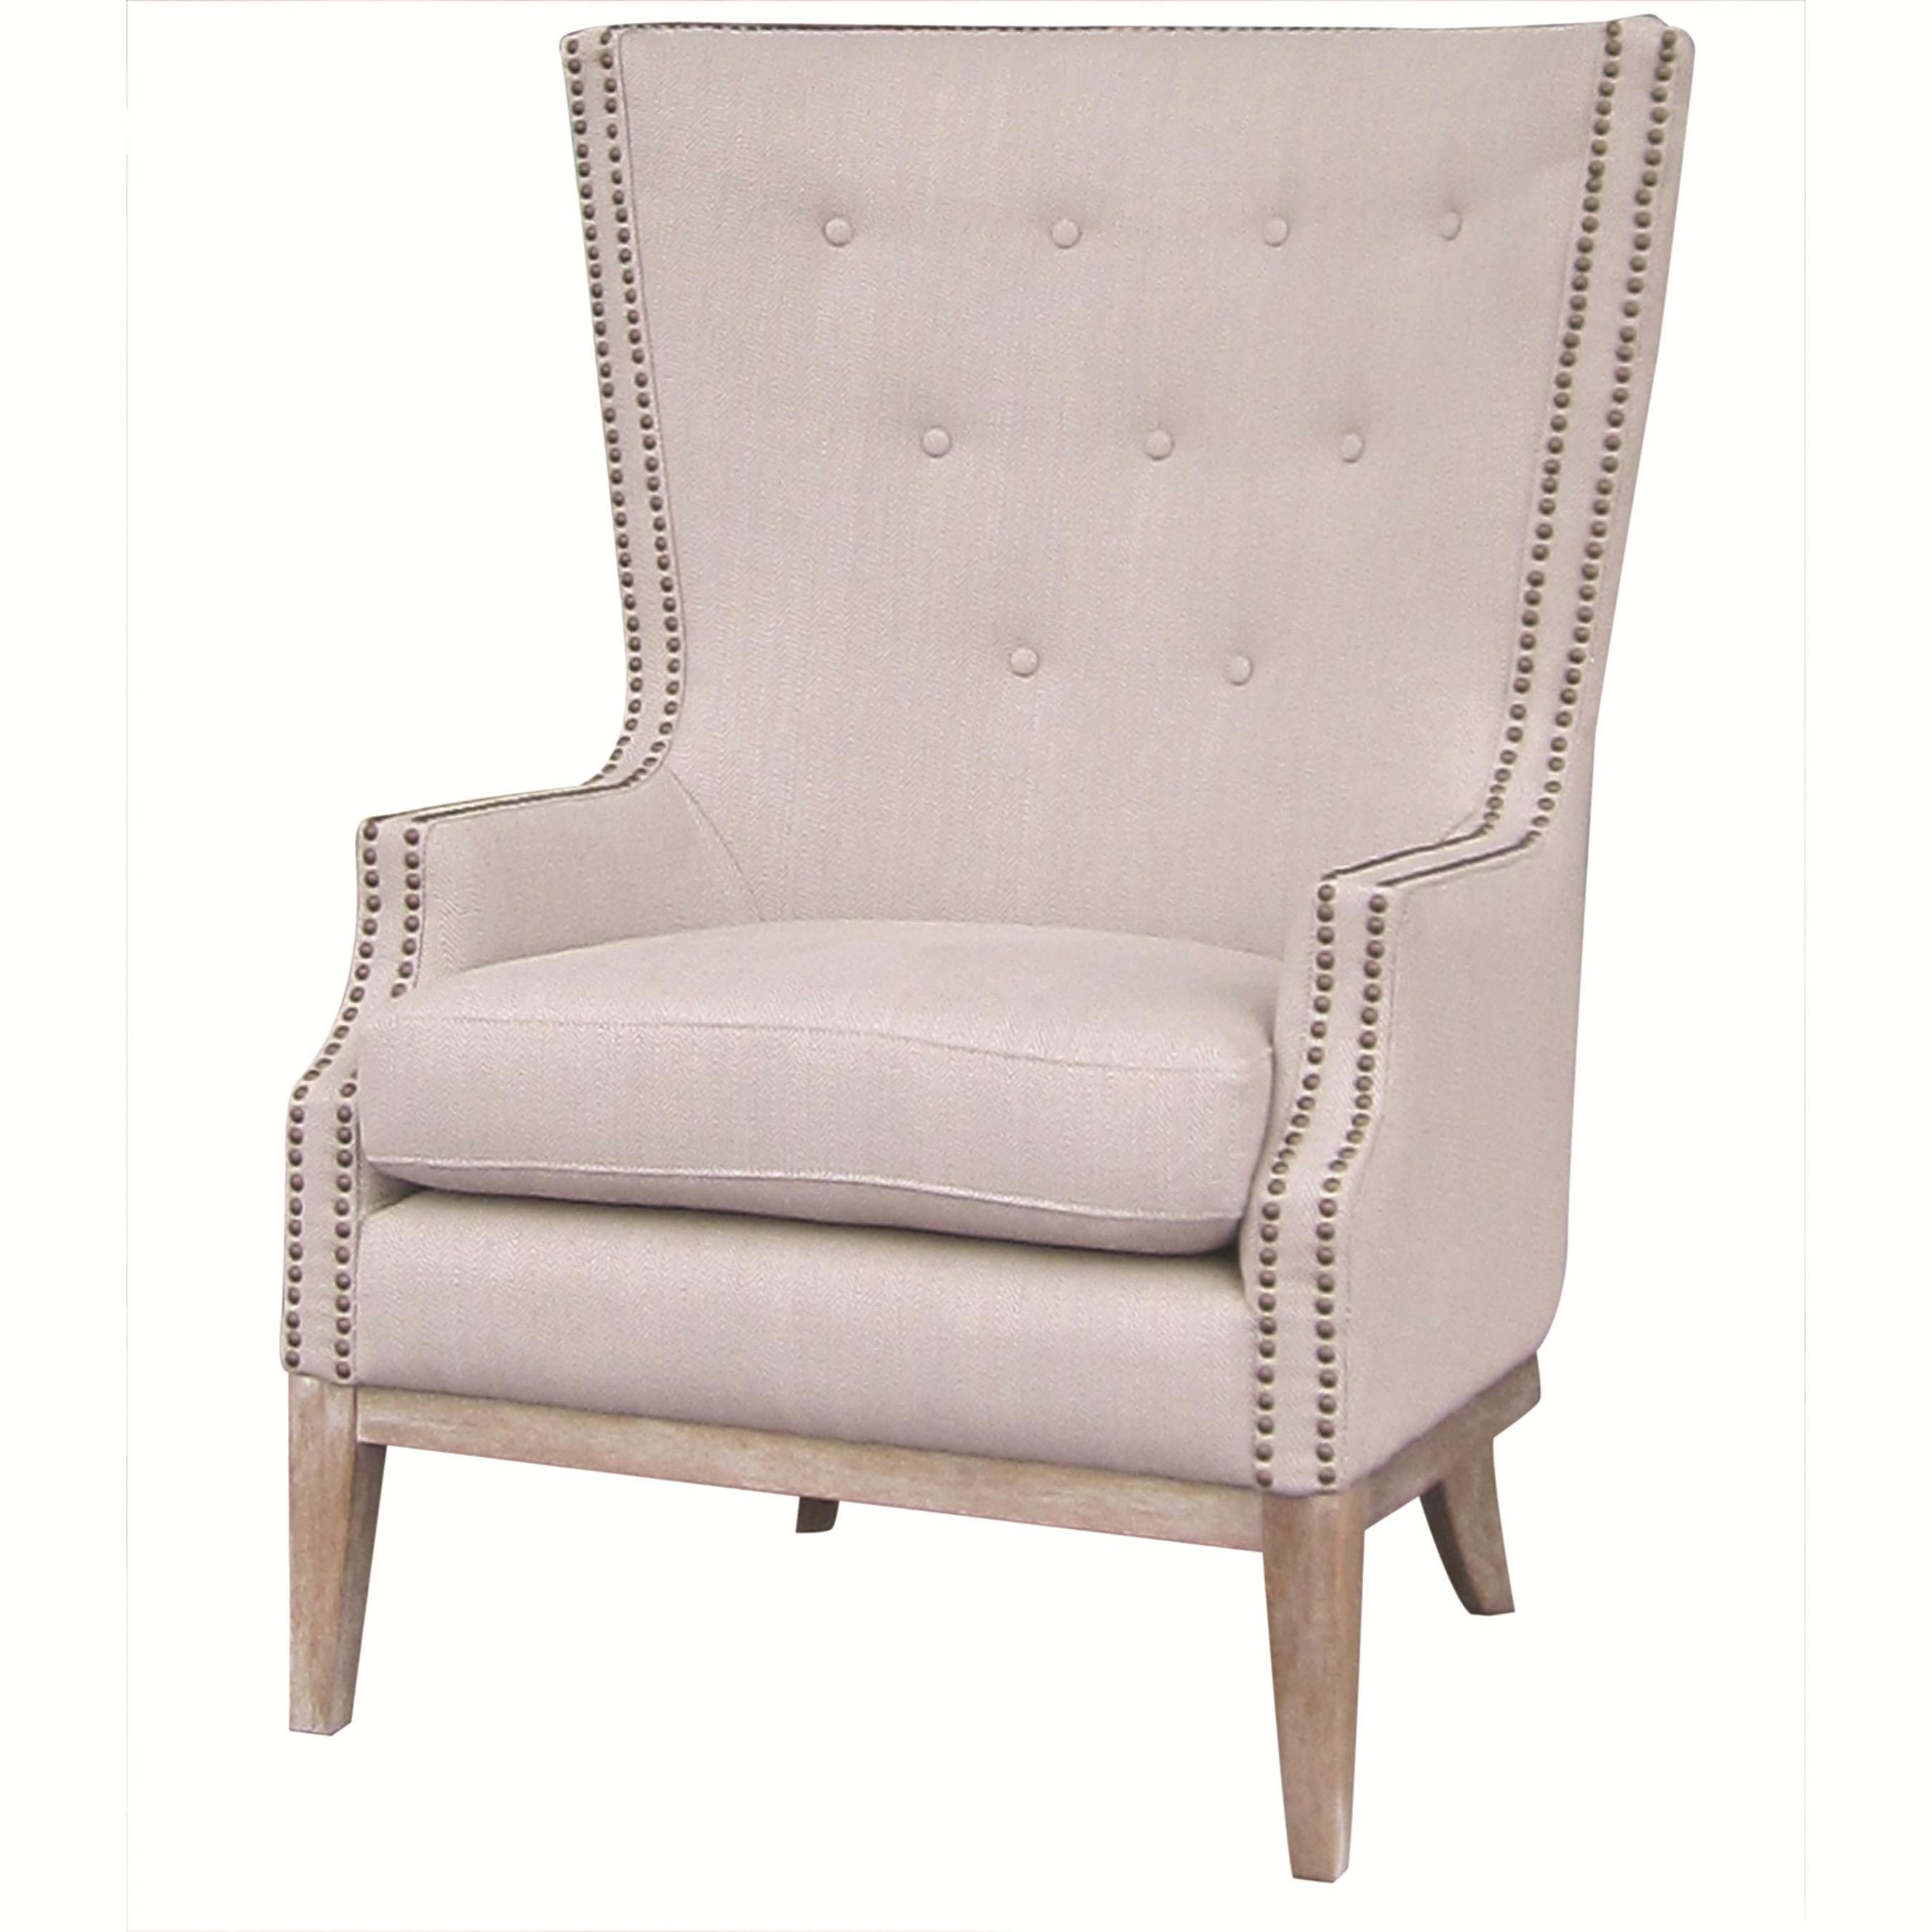 Four Hands Kensington Lillian Occasional Chair with Button Tufting